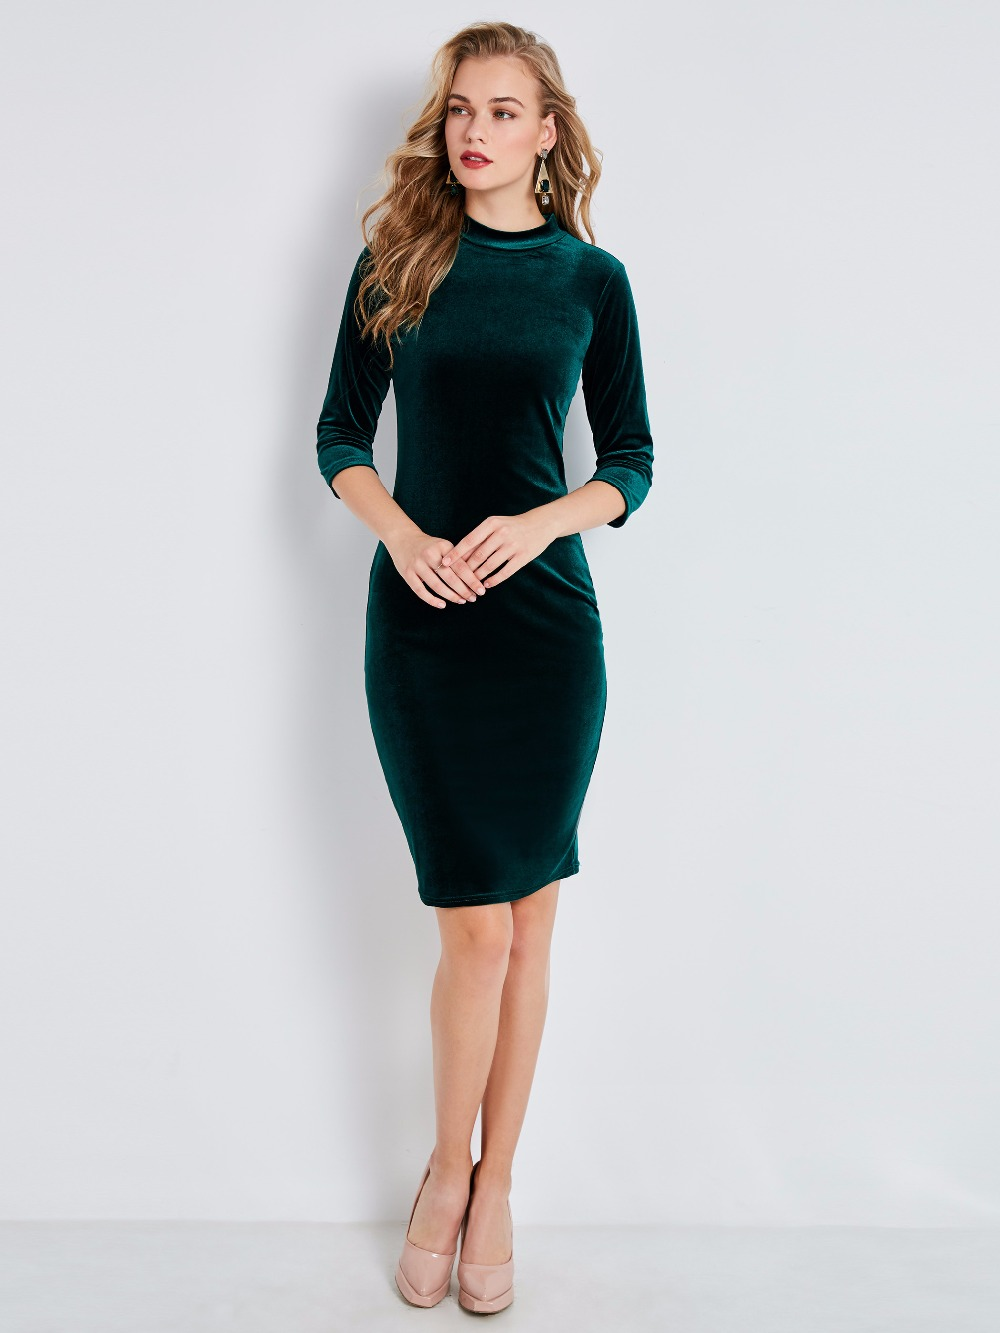 Small Crop Of Hunter Green Dress